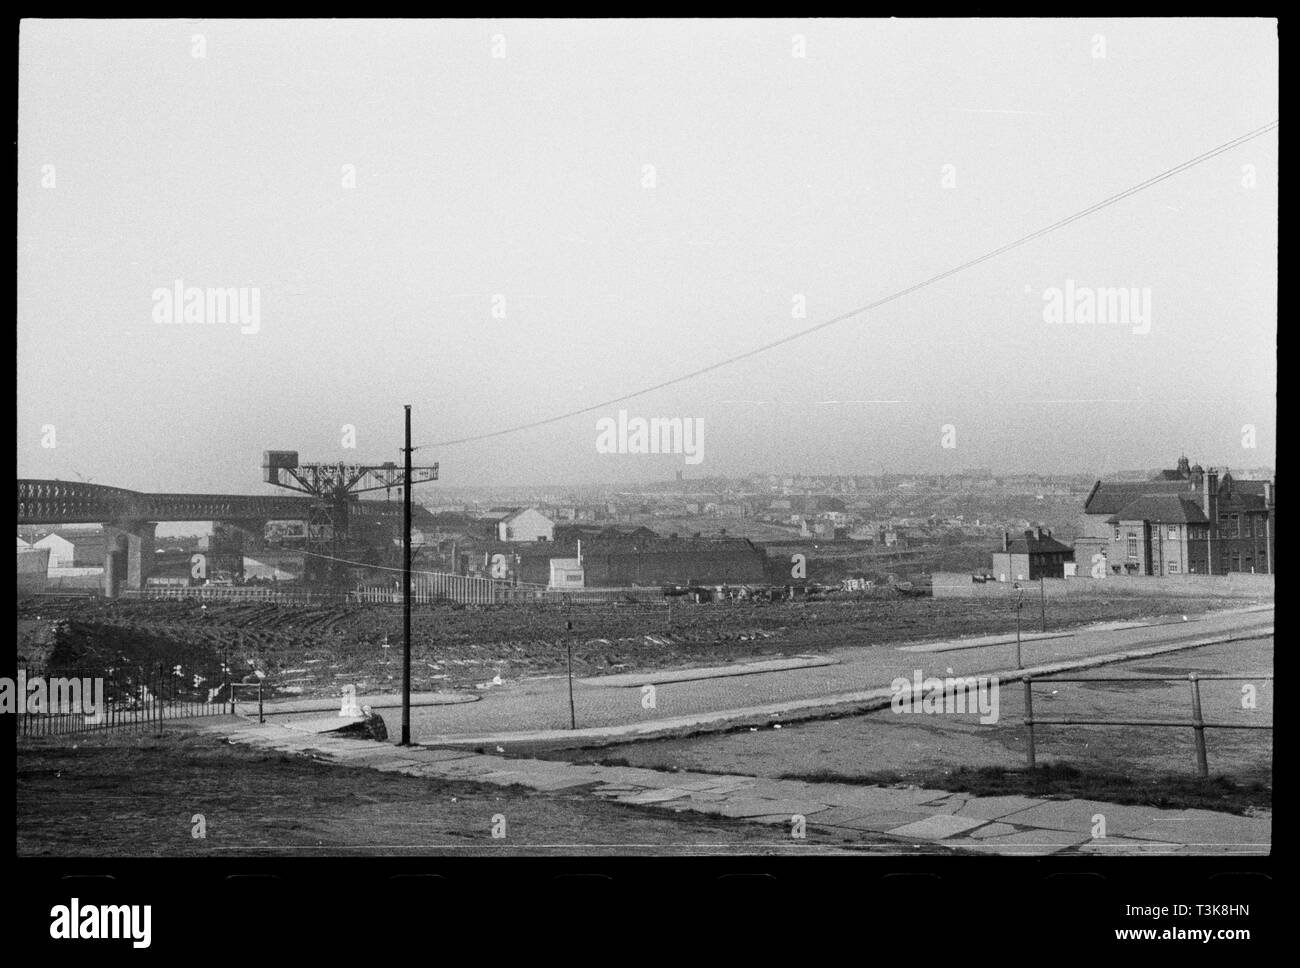 Deptford Terrace, Deptford, Sunderland, 1961. Cleared land on Deptford Terrace viewed from Deptford Junction with Queen Alexandra Bridge to the left of frame and Deptford Terrace School to the right. This is one of a group of photographs associated with the Pyrex factory (Wear Flint Glass Works, manufacturers of Pyrex in the UK. - Stock Image